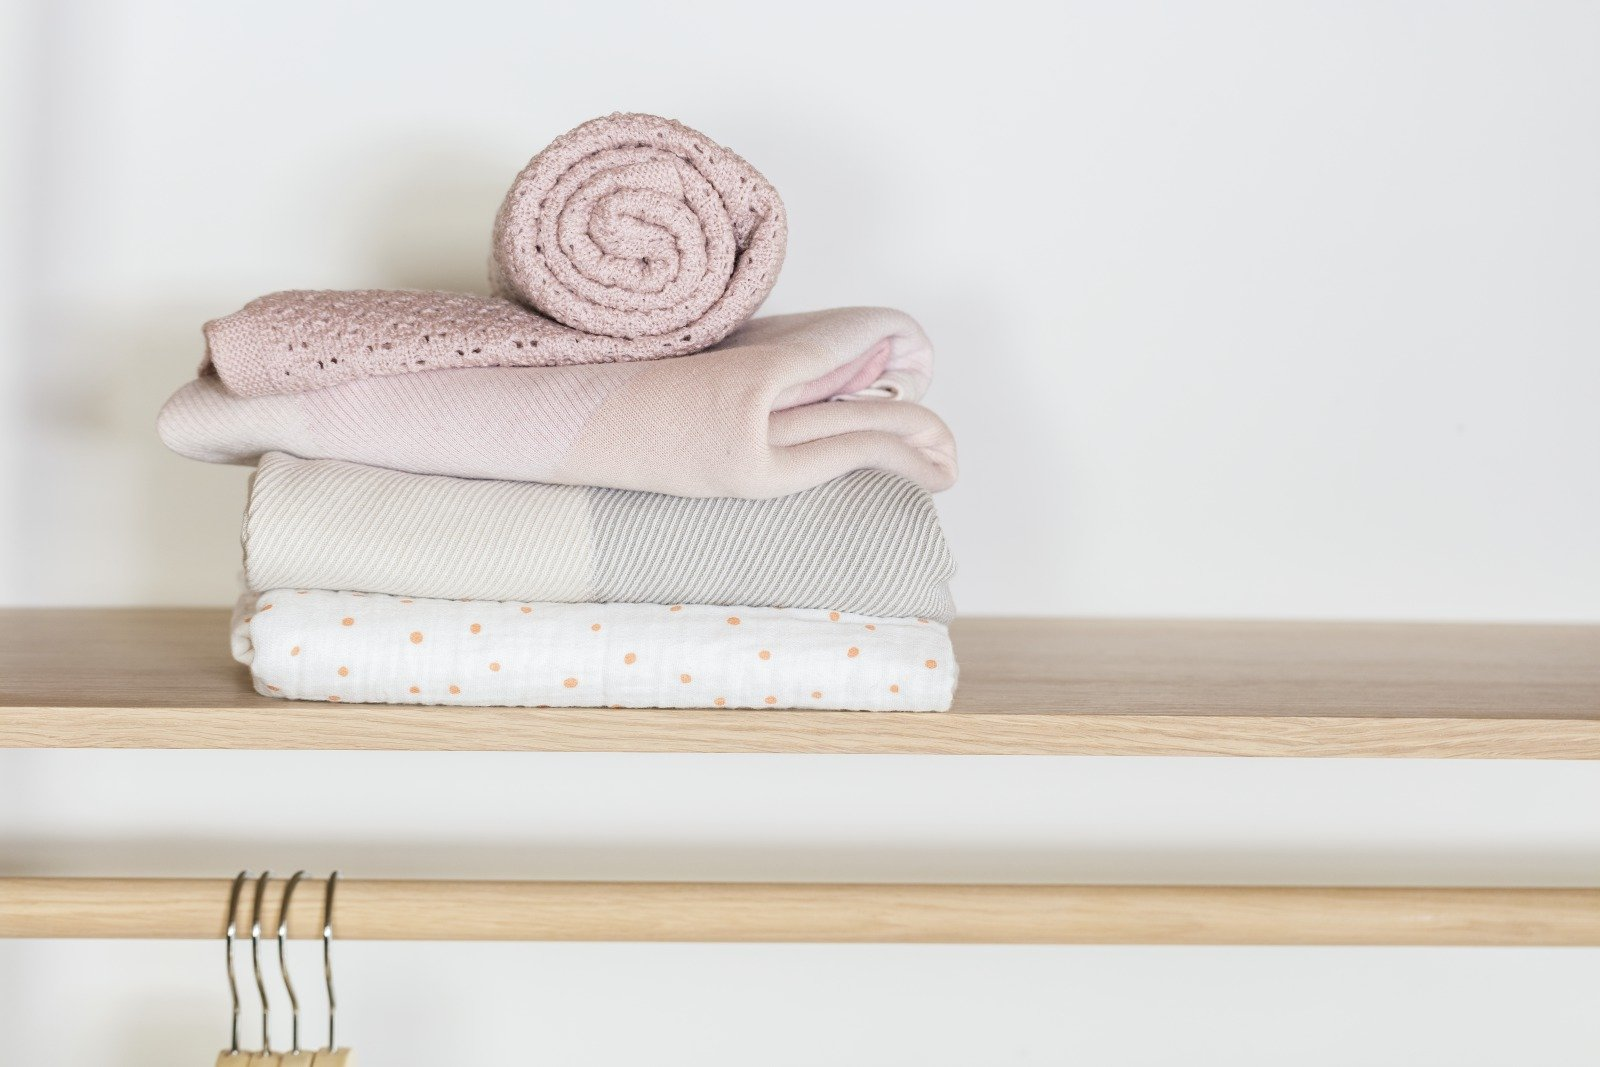 Stokke® Caring Collection. Blanket Merino Wool, Pink. Cotton Knit, Pink and Beige. Muslin Cotton, Coral Bee. Indoor.